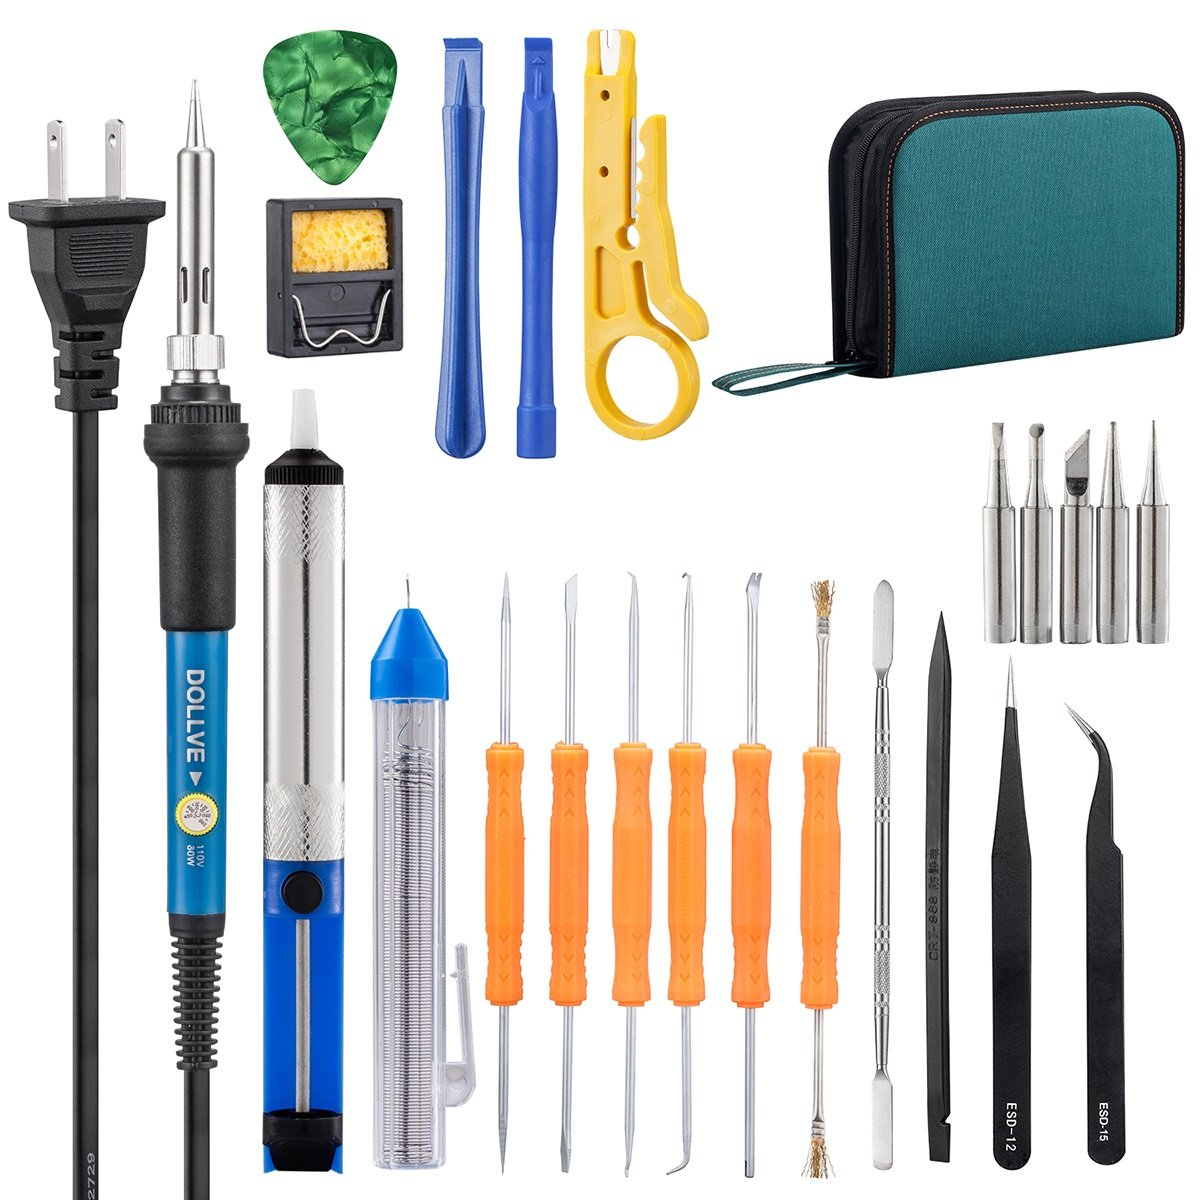 Soldering Iron Kit,Including 60W Temperature Control Soldering Iron, 130PCS Heat Shrink Tubes, Tips, Solder Sucker, Solder Wire, Tweezer (green tool bag)